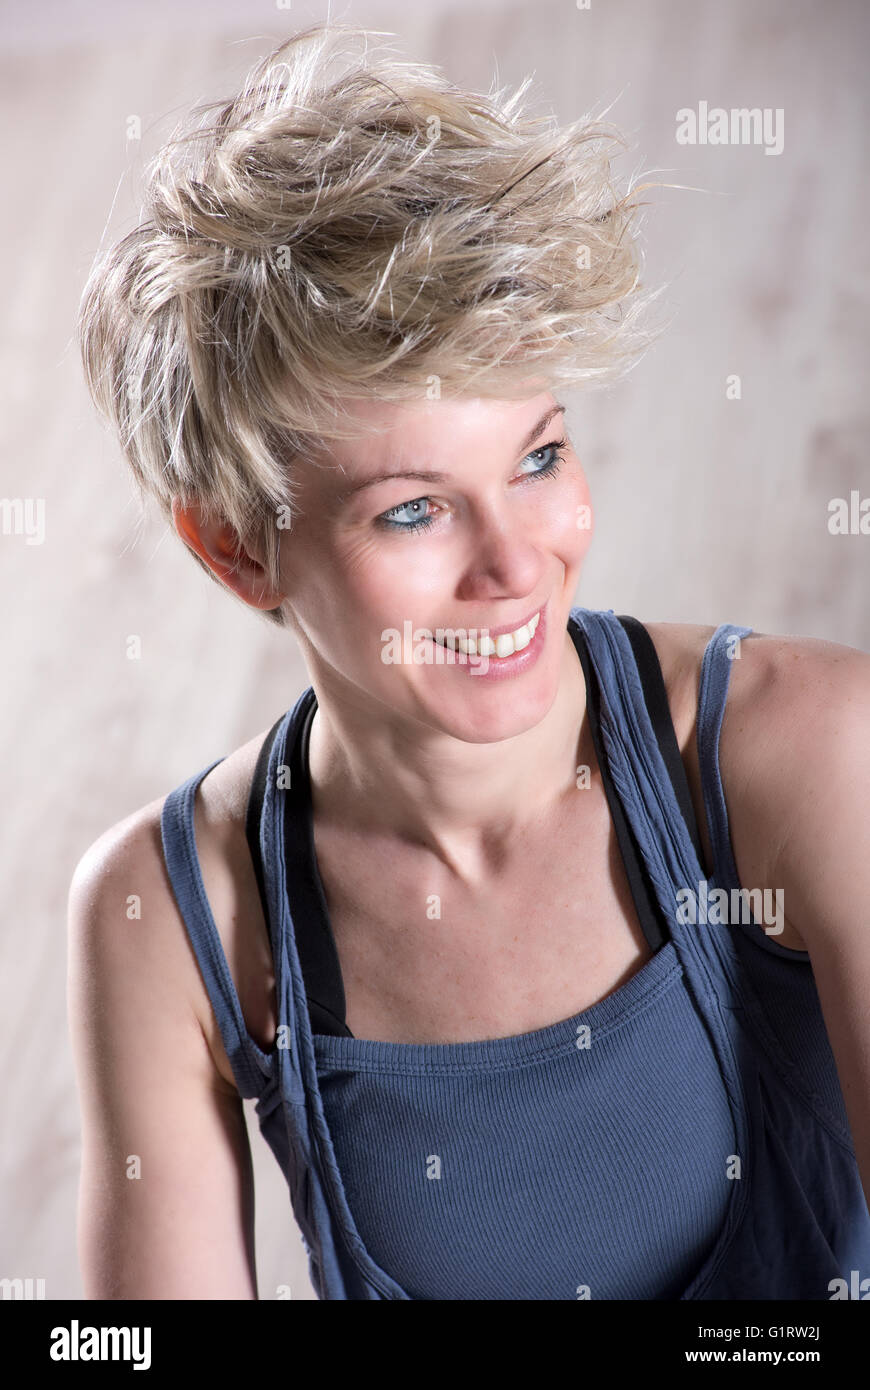 Portrait of single athletic beautiful blond woman smiling and looking sideways over stone marble background - Stock Image